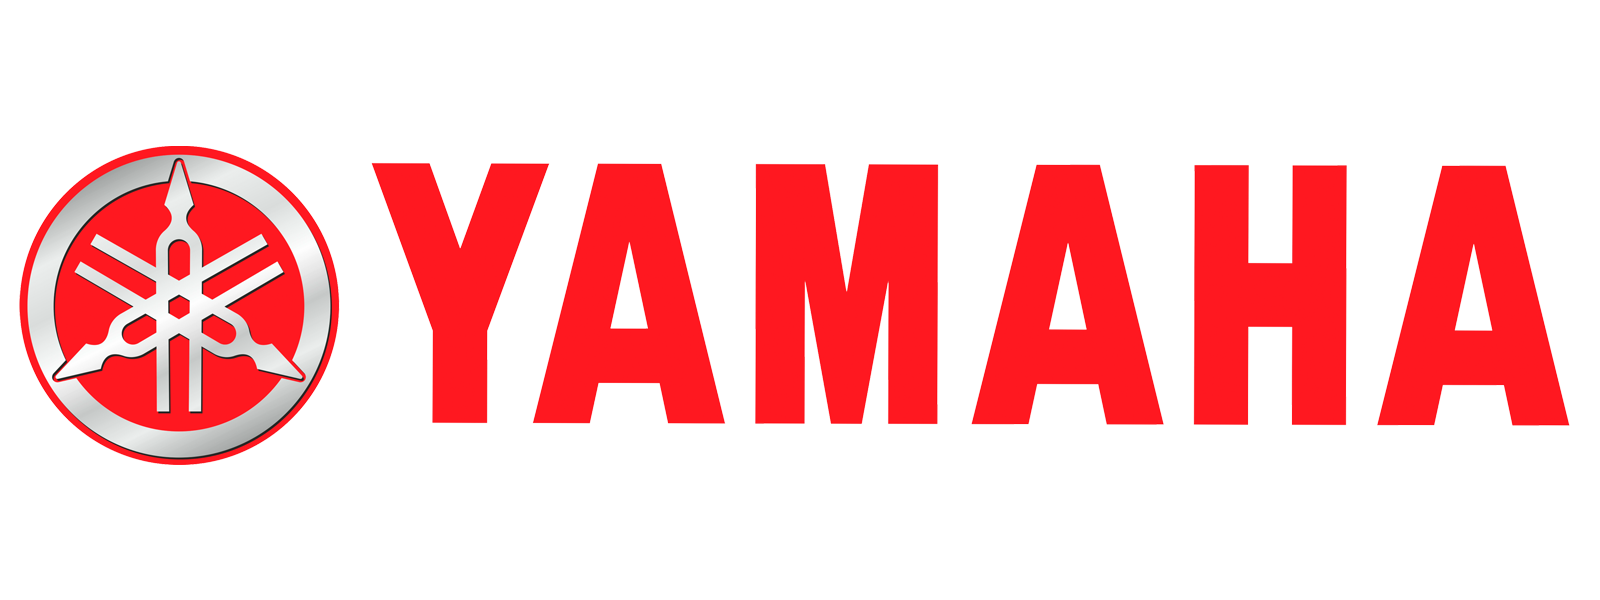 yamaha logo red